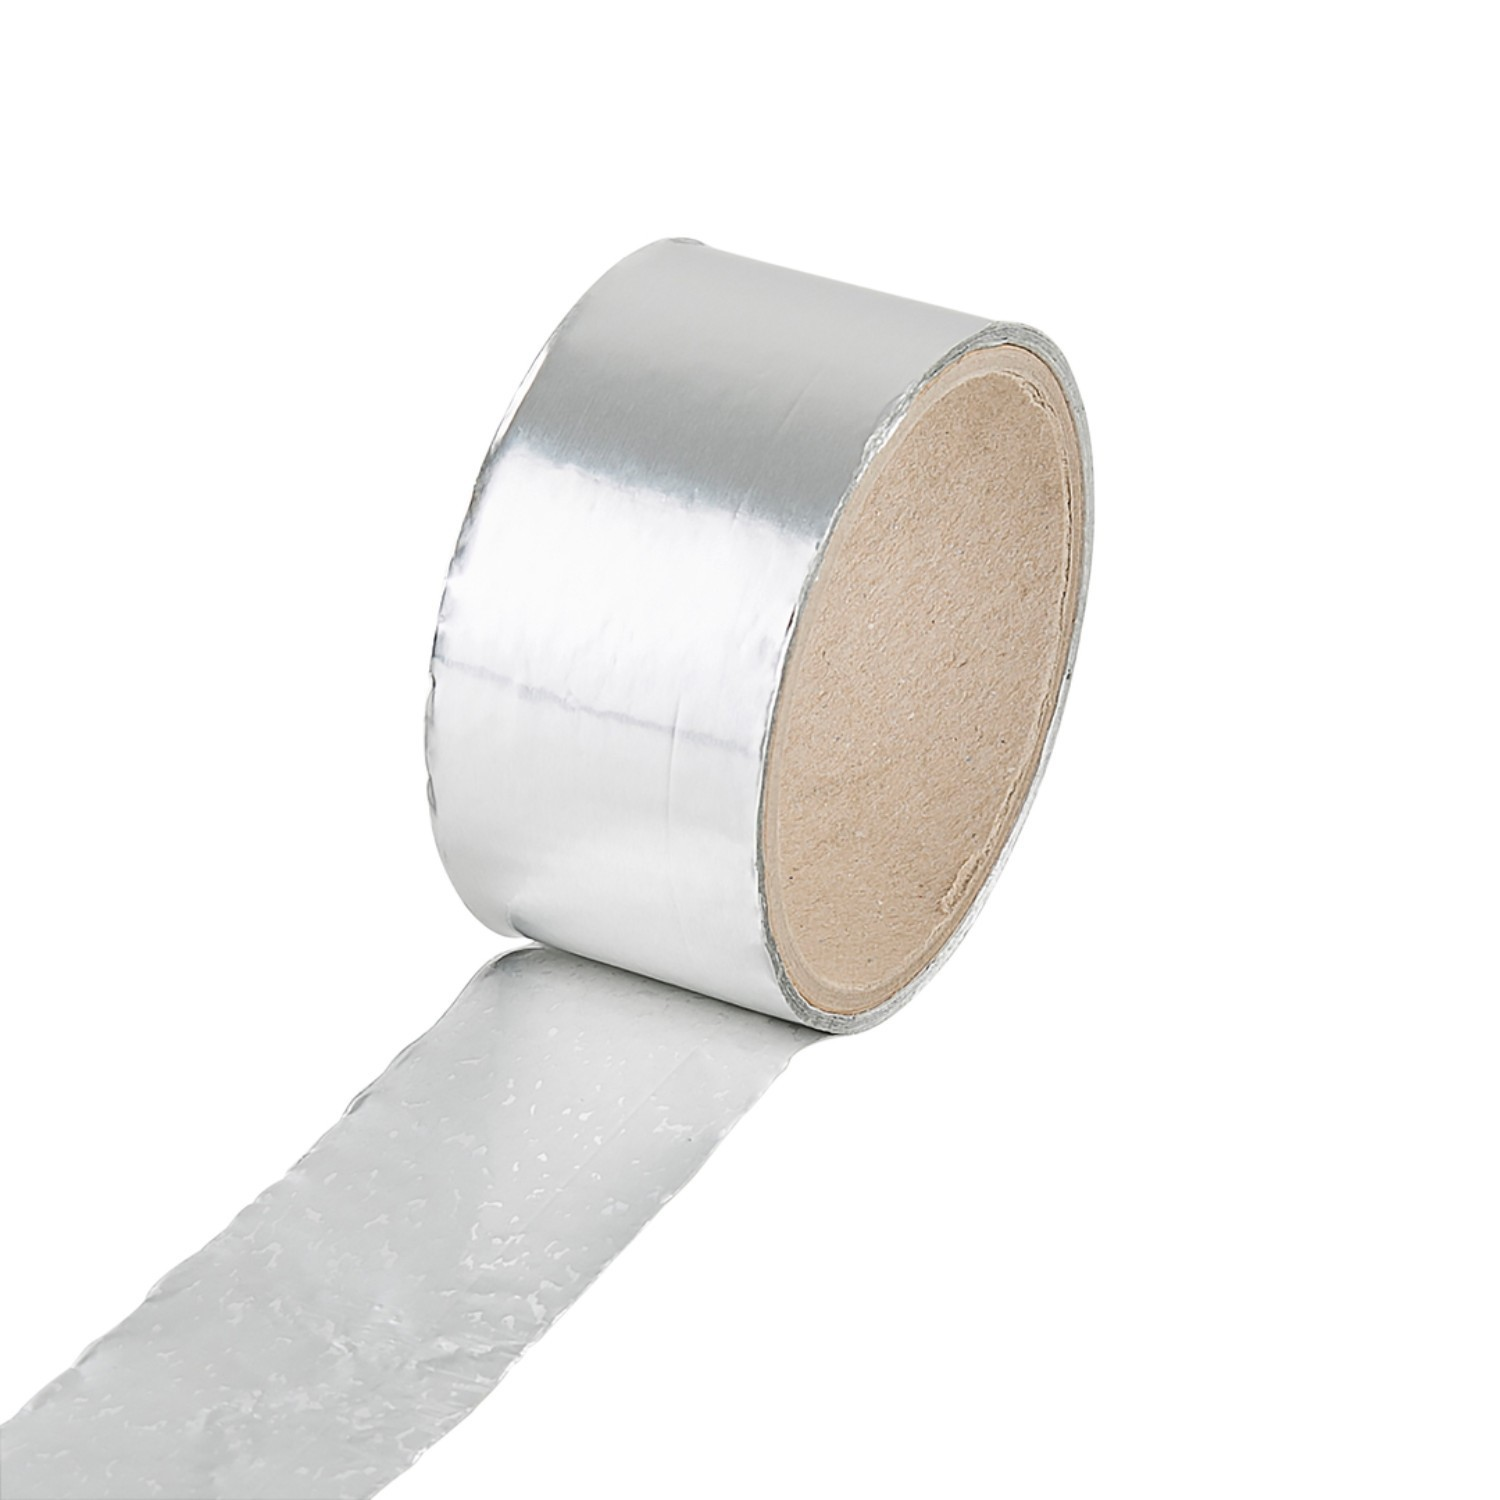 Corotherm - 10mm Polycarbonate Sheet Aluminium Sealing Tape (10m)